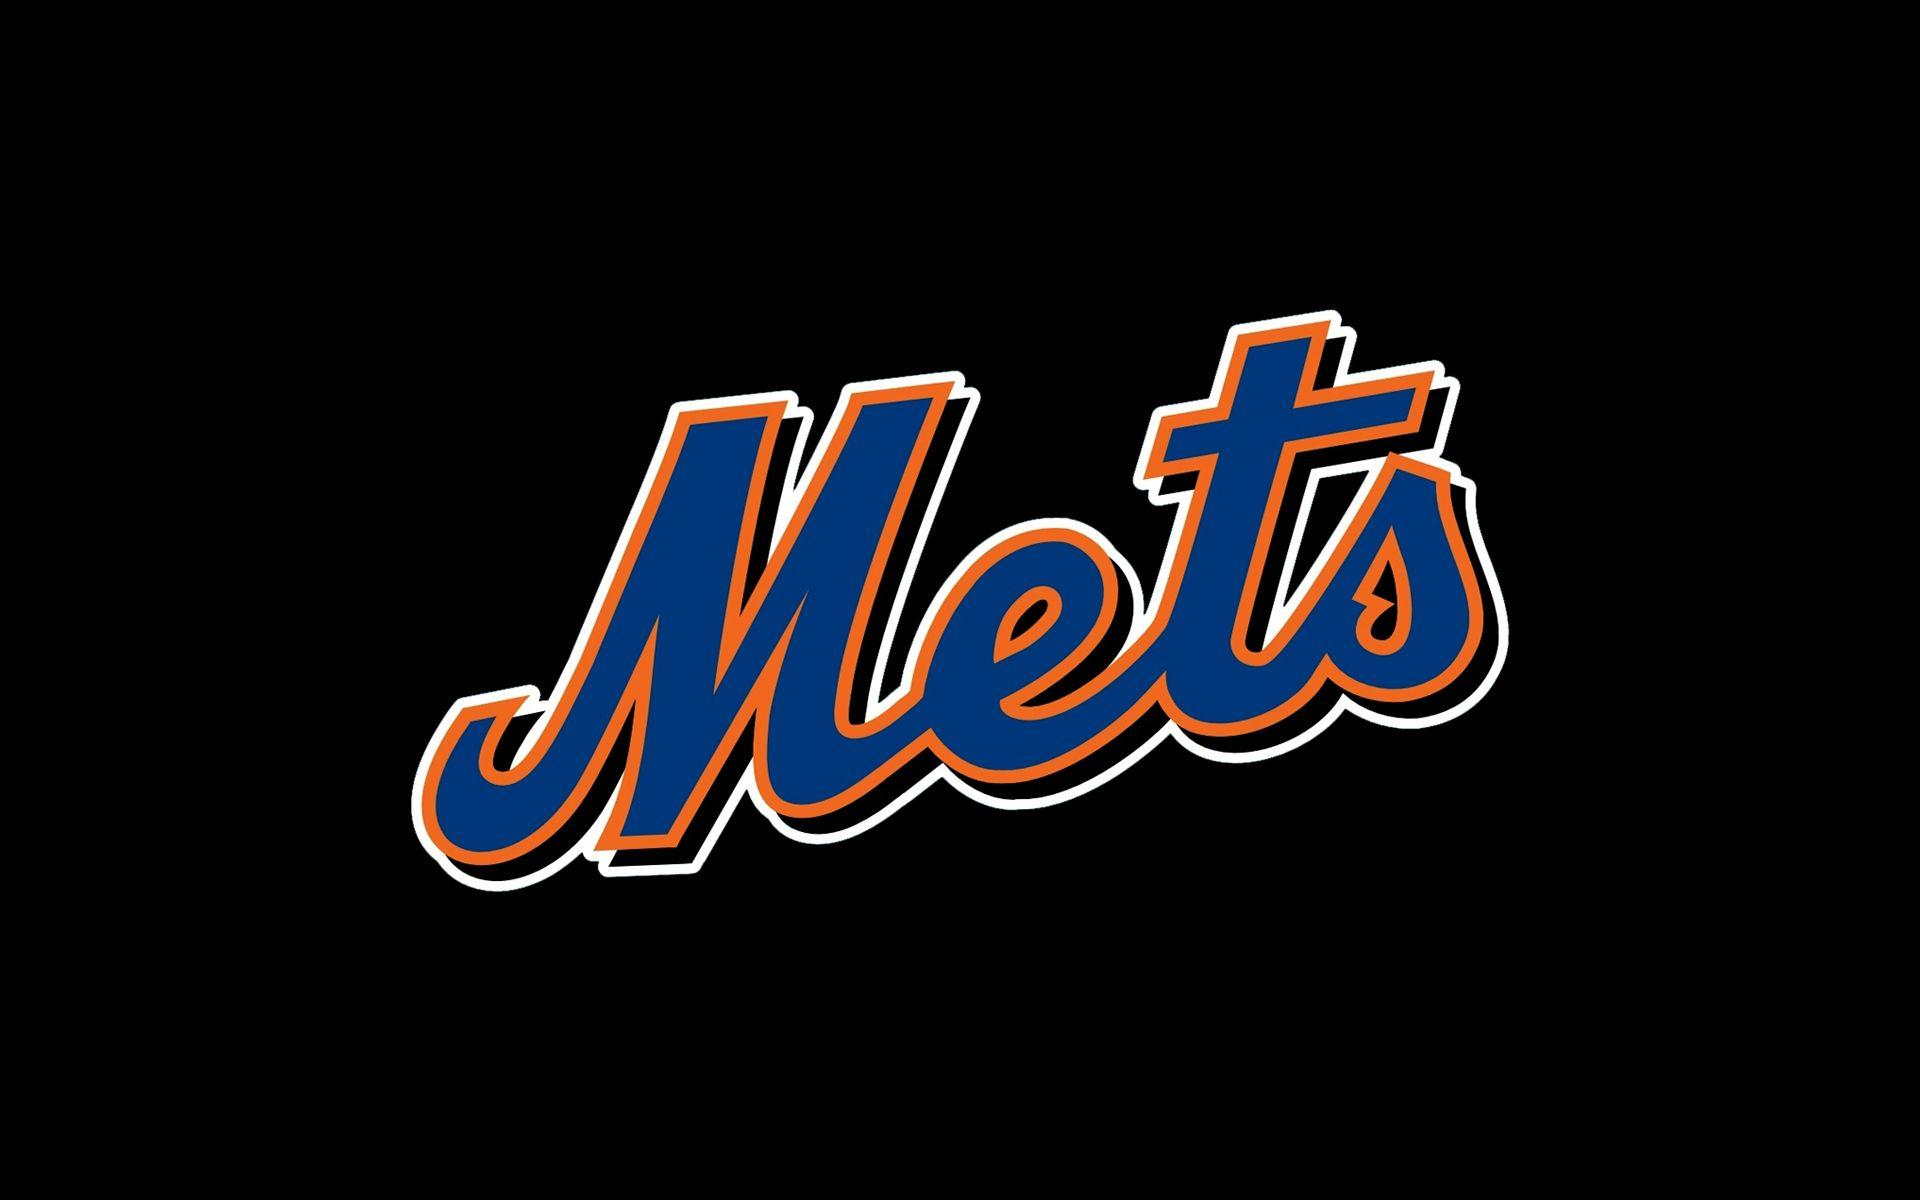 New York Mets Logo Desktop Wallpaper 50289 1920x1200 px ...